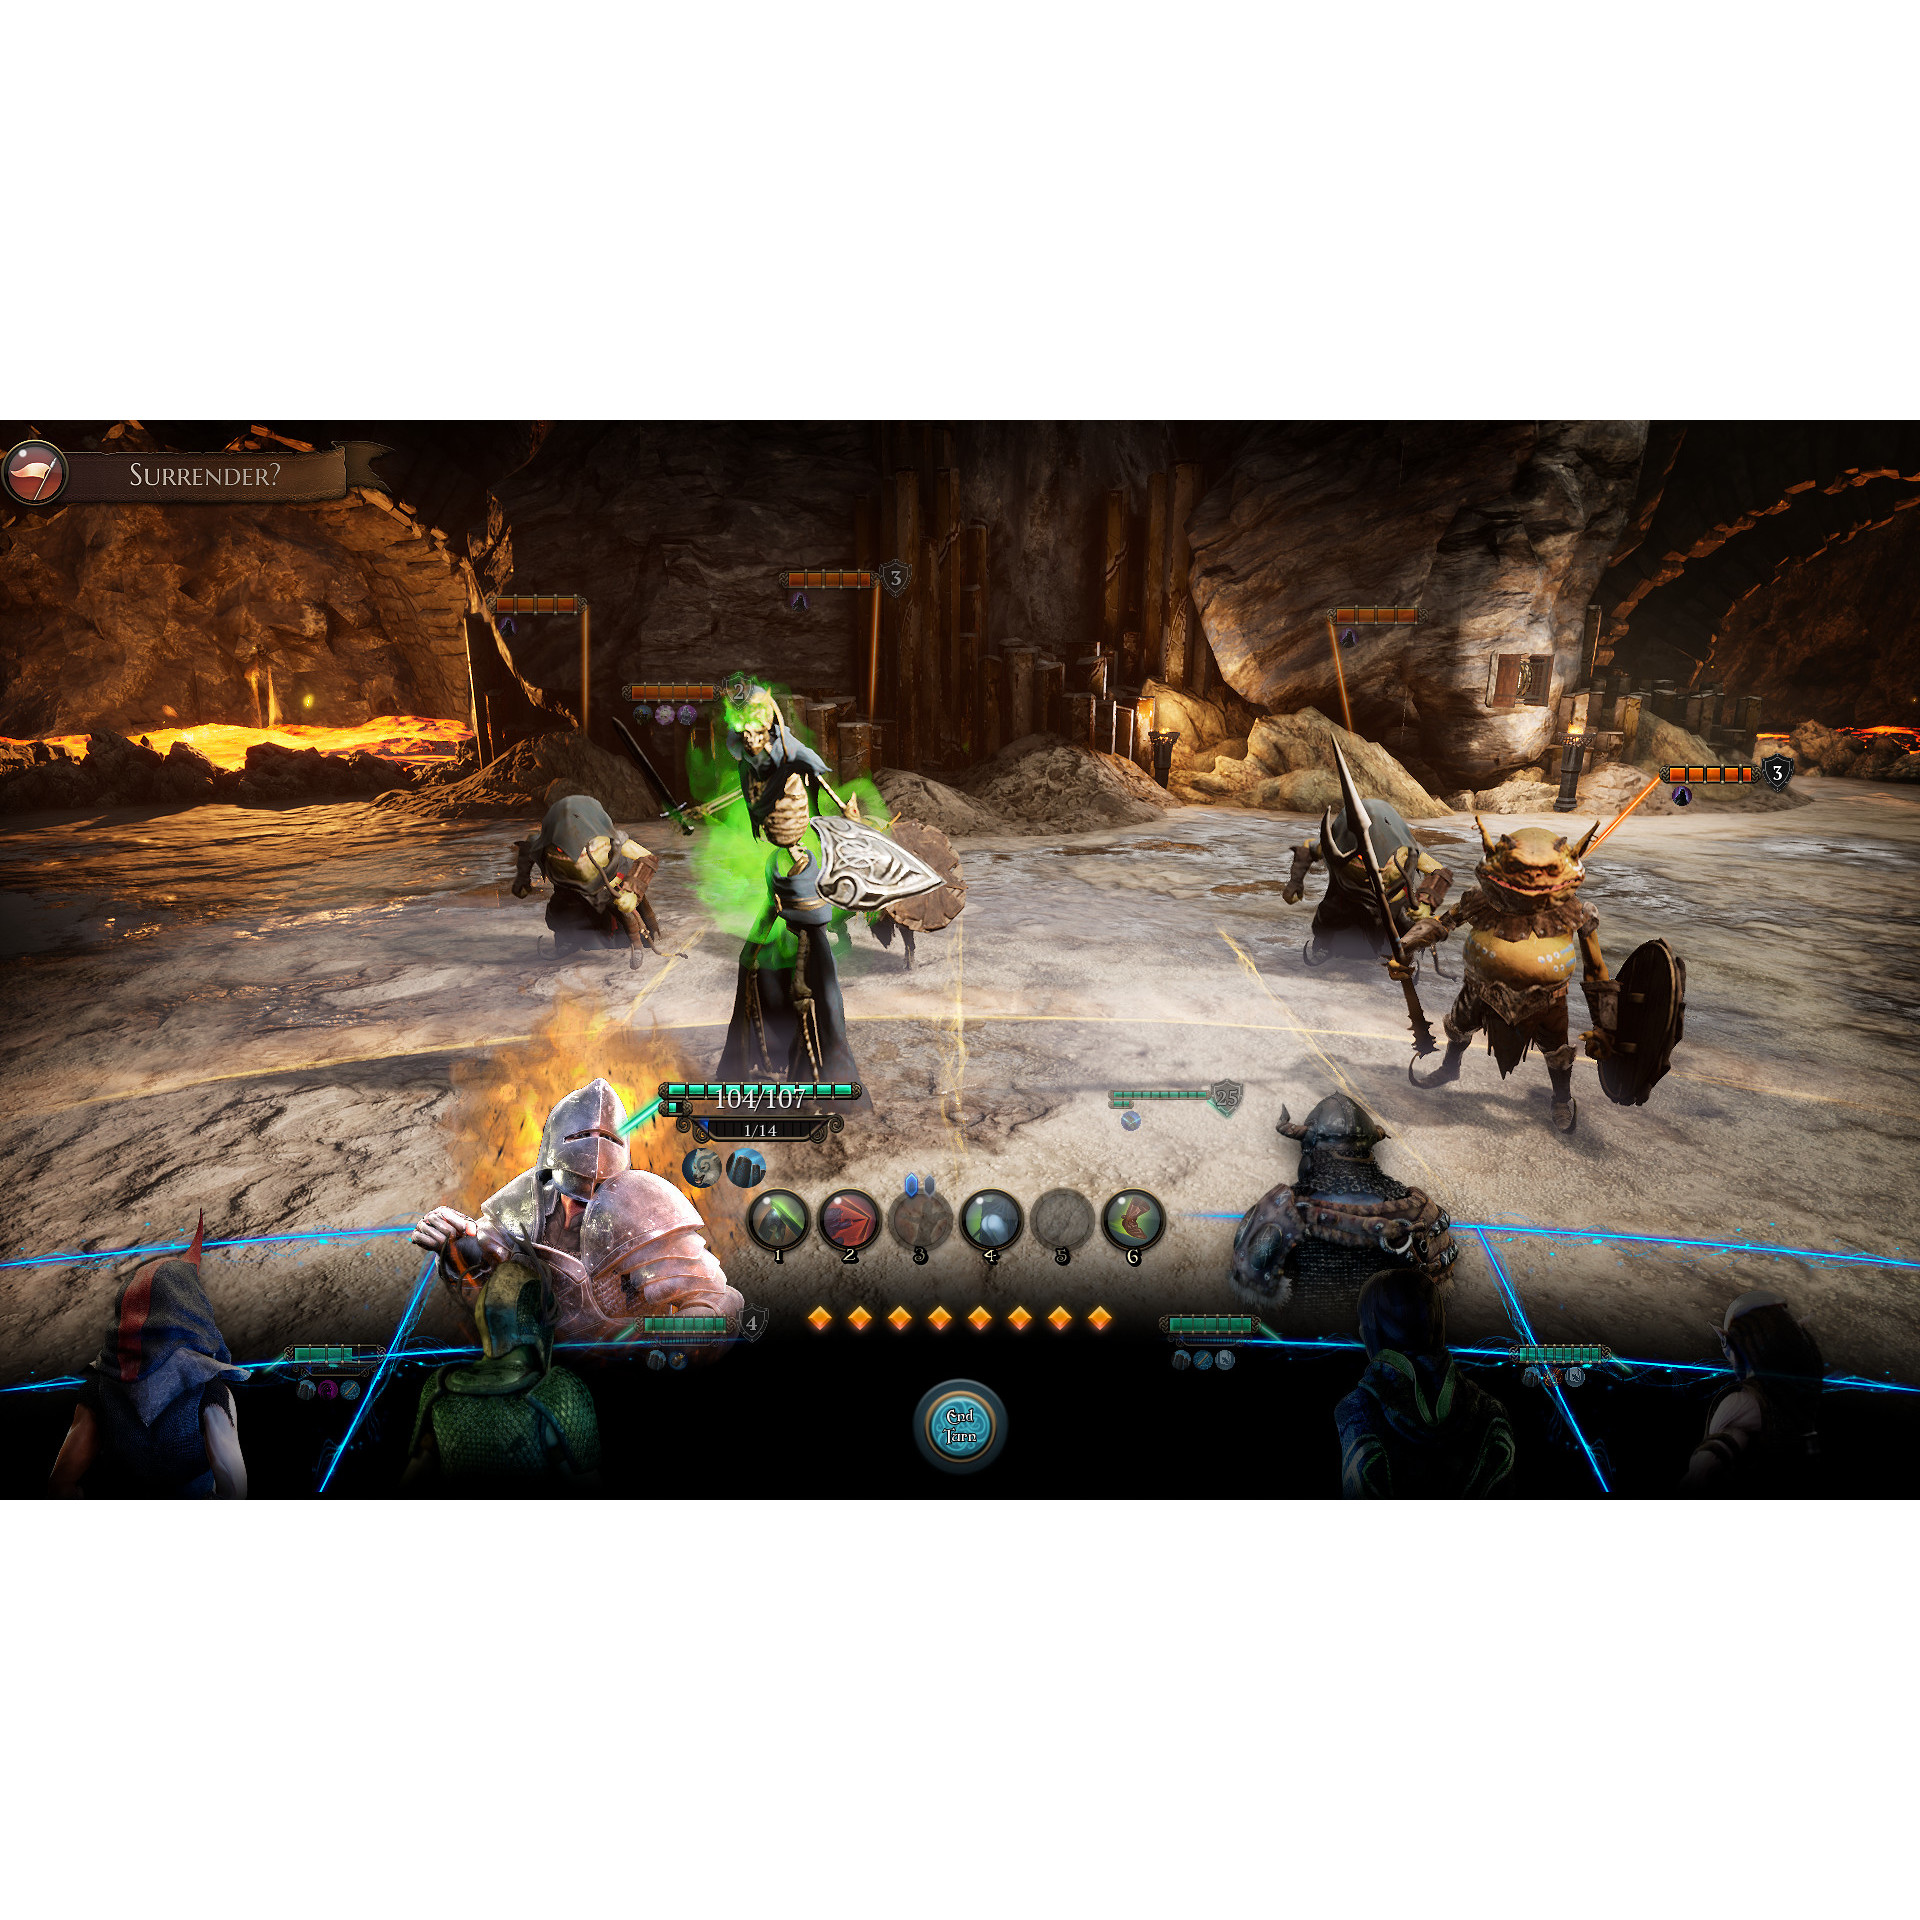 Joc The Bard's Tale IV: Directors Cut Day One Edition (EU) Pentru PlayStation 4 1